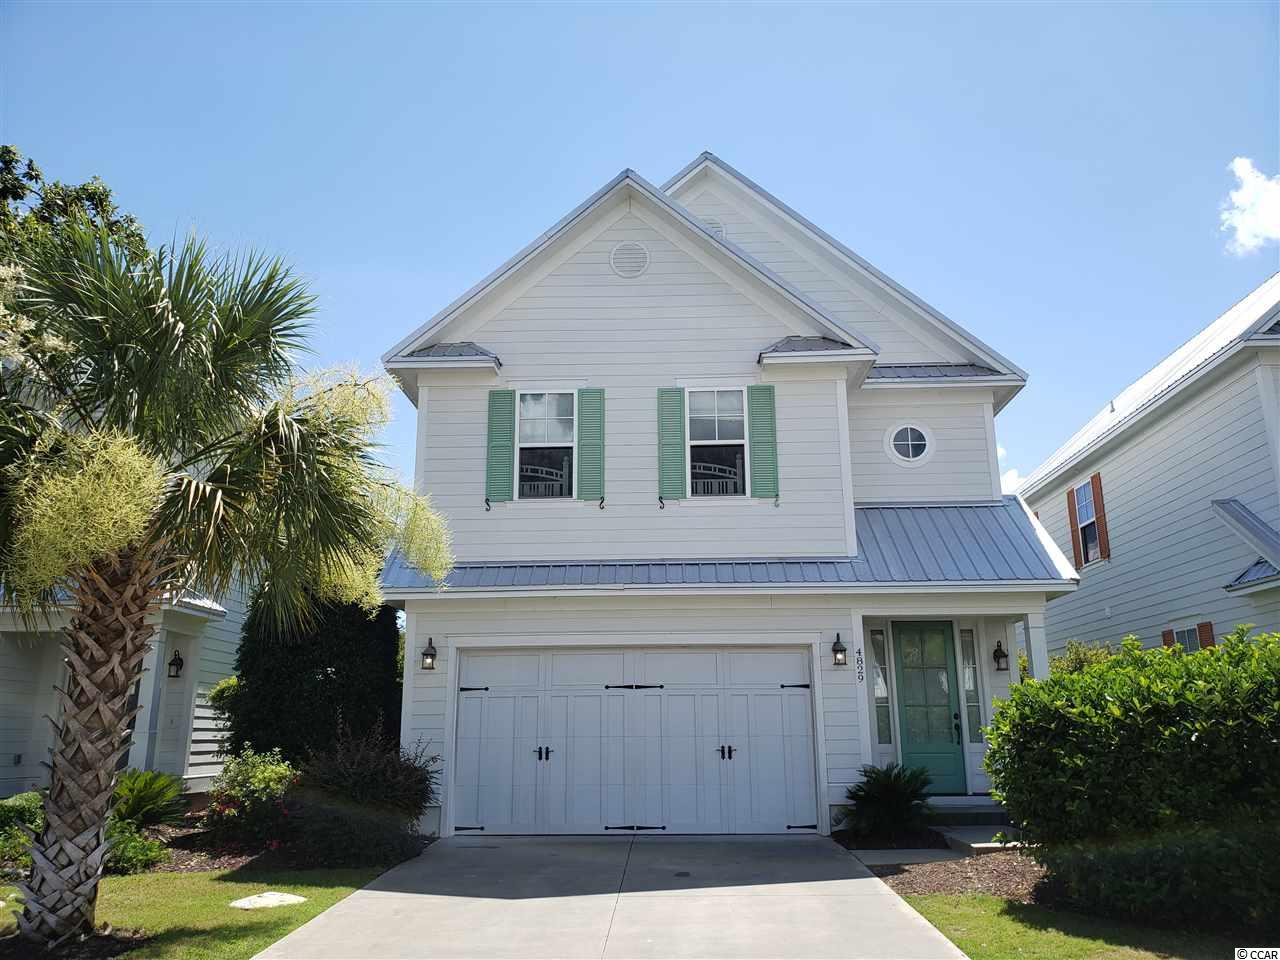 Beautiful 3-bedroom, 3.5-bath furnished home w/2-car garage in the North Beach Plantation community. Enjoy the cozy back patio or take a 5-minute stroll to the 2.5-acre oceanfront pool complex that includes 8 pools, 3 hot tubs, swim-up bar, kids area, adults-only area, lazy river & private cabanas. The fitness center, spa & award-winning 21 Main restaurant are also a 5-minute walk away. Free shuttle service takes you anywhere in the community. Low-maintenance home has durable metal roof & fiber cement siding. HOA does all landscaping & lawn care & maintains lawn irrigation system. Walking-distance to Duplin Winery & the 60+ shops and 15+ restaurants at Barefoot Landing. Closer yet are McDonald's, Cracker Barrel, Olive Garden, Longhorn & the popular Joe's Bar & Grill. Its's a short drive to all the fun on Main Street in North Myrtle Beach and to all that Myrtle Beach has to offer. Just 15 minutes to the Little River waterfront & gambling boats. Four golf courses in Barefoot Resort & 100 more nearby. Very strong rental income.